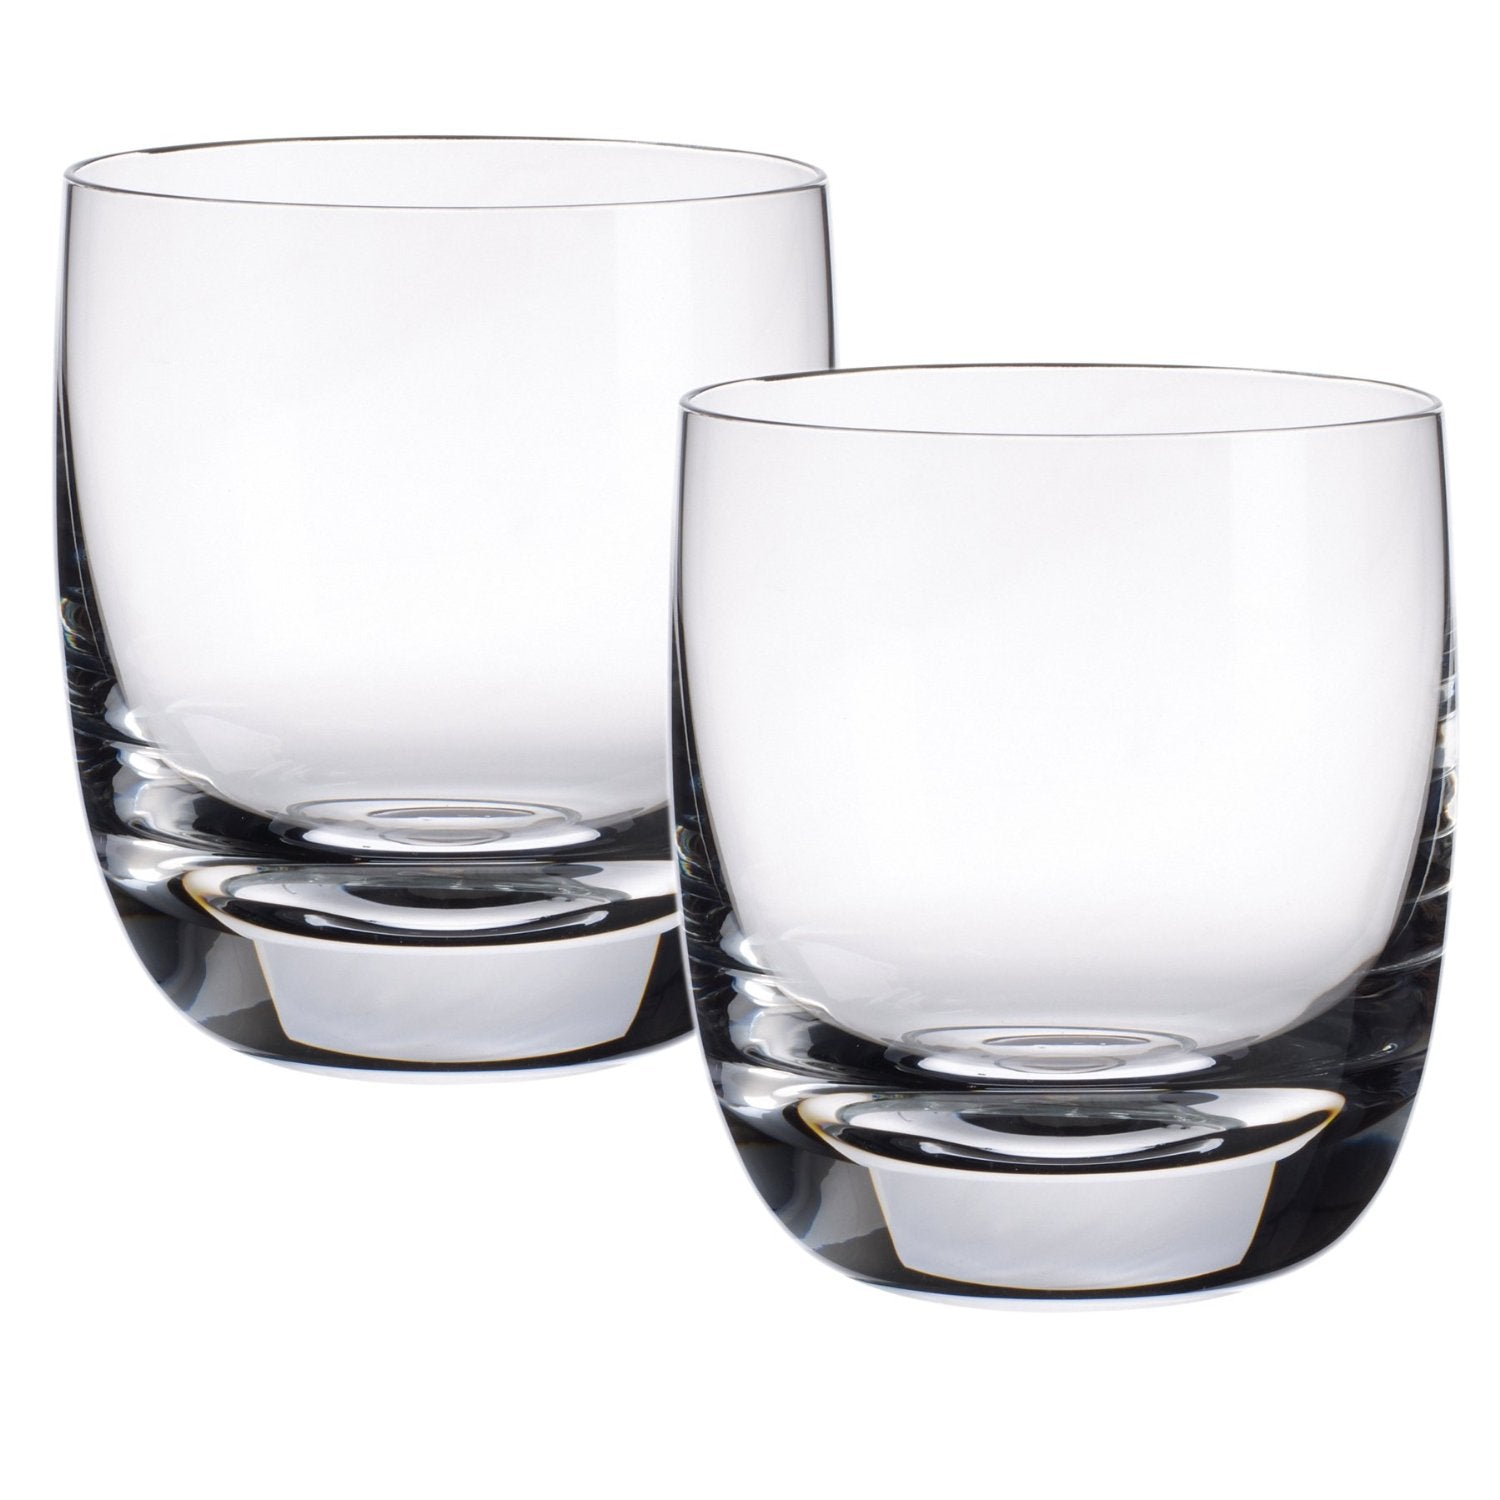 Villeroy & Boch Scotch Whiskey Blended Scotch 3-1/2-Inch Tumbler No 1, Set of 2